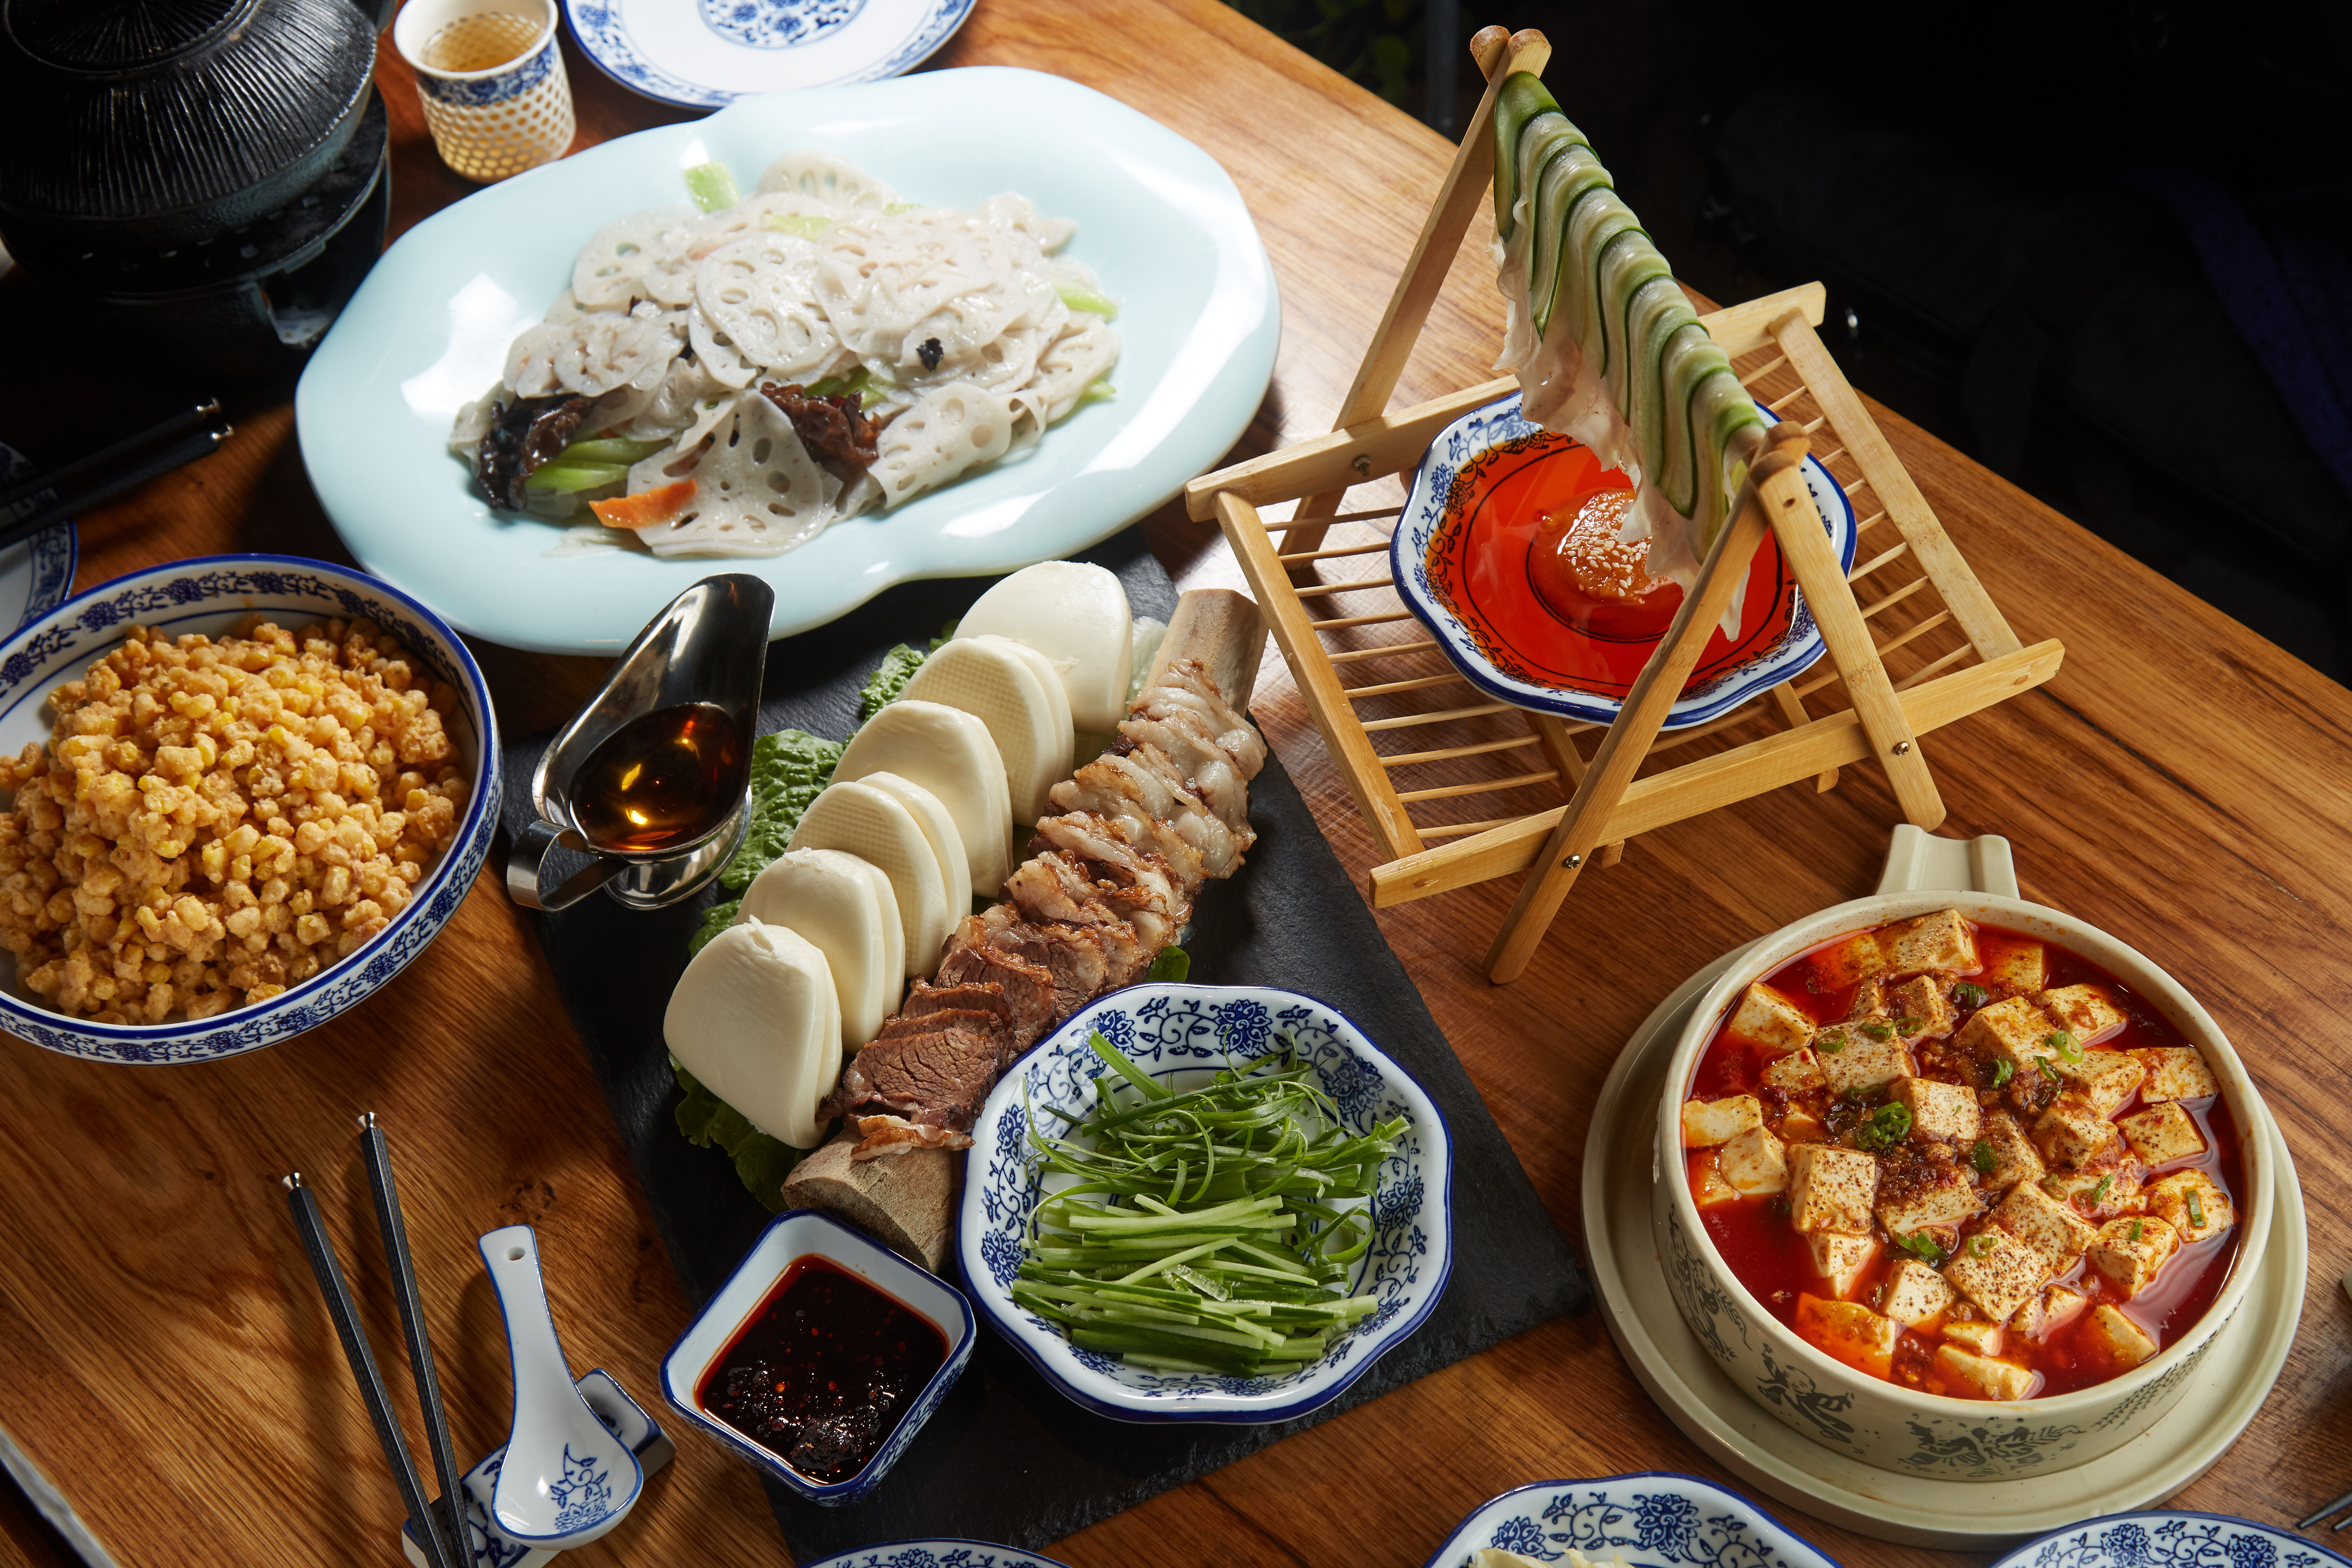 A selection of Sichuan dishes, including thinly sliced cucumber, mapo tofu, and lotus root